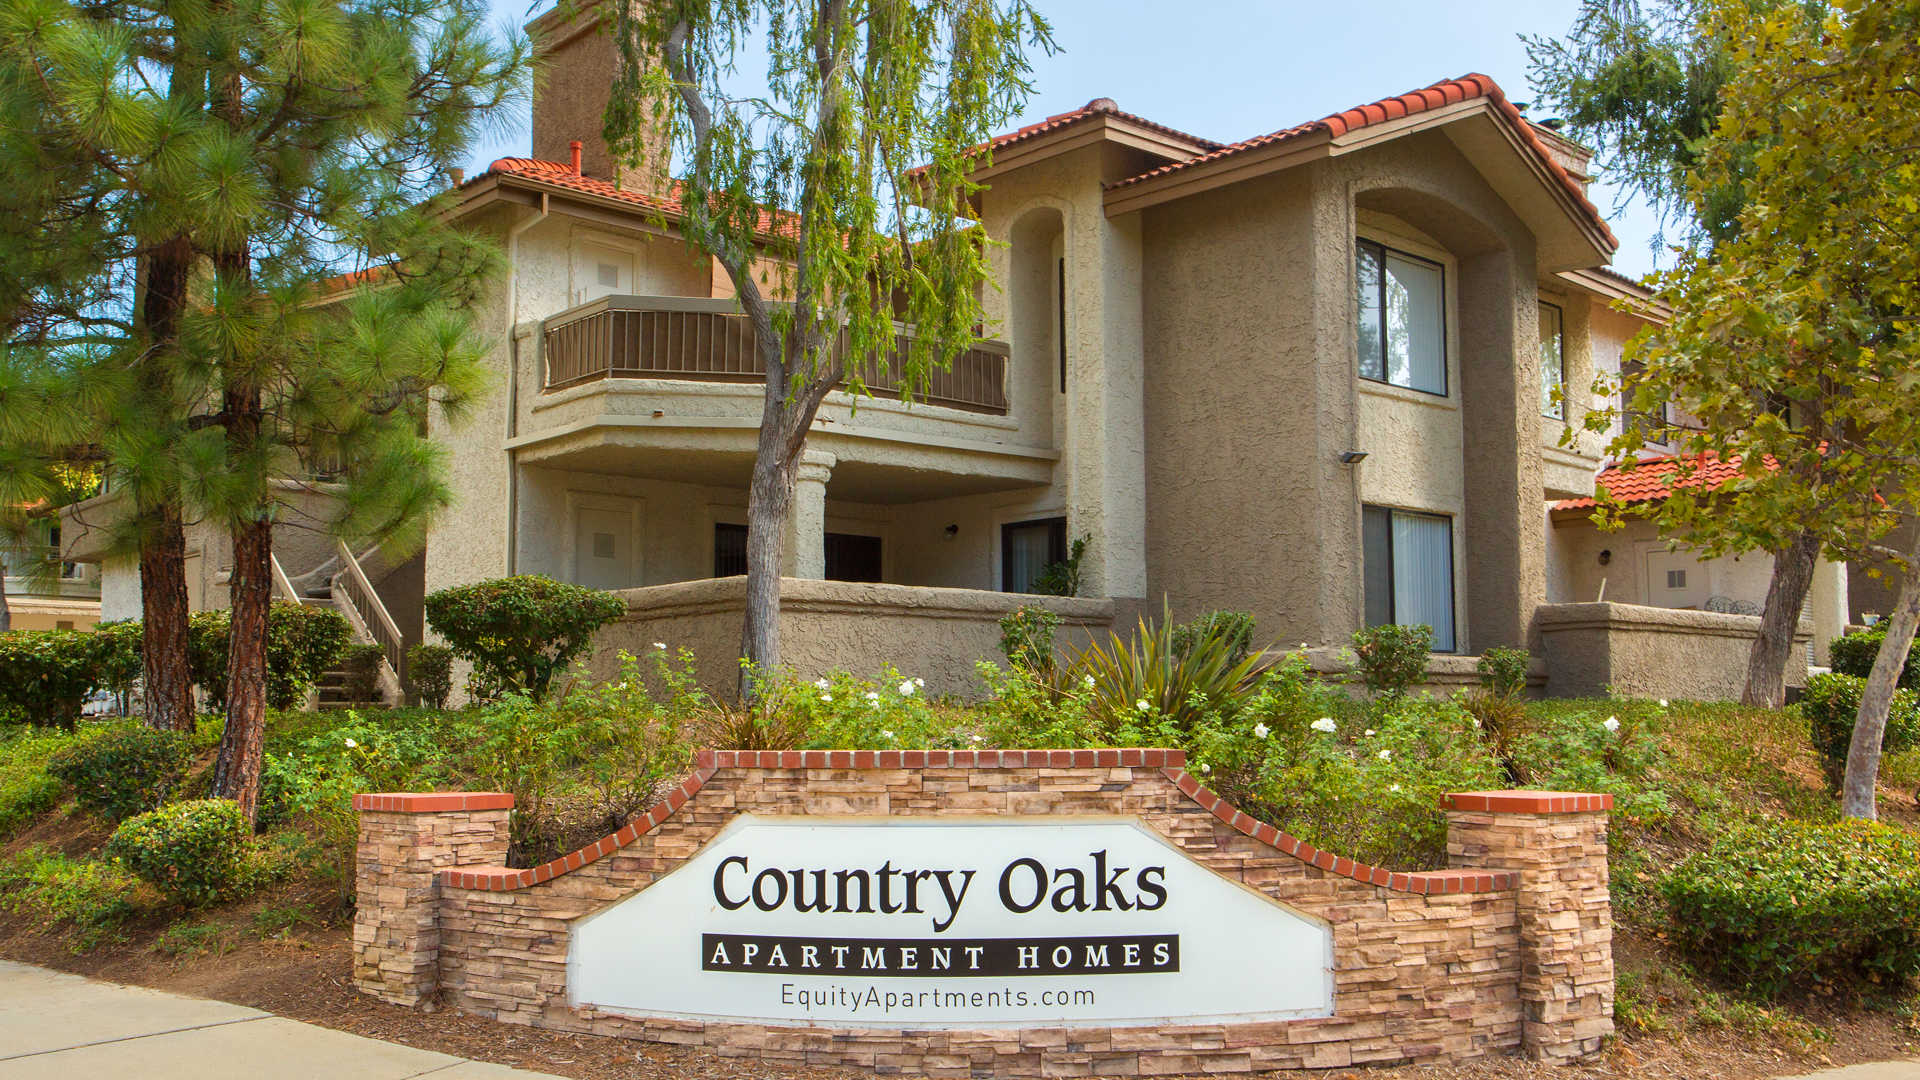 Country oaks apartments agoura hills 5813 hickory drive country oaks apartments agoura hills 5813 hickory drive equityapartments solutioingenieria Image collections